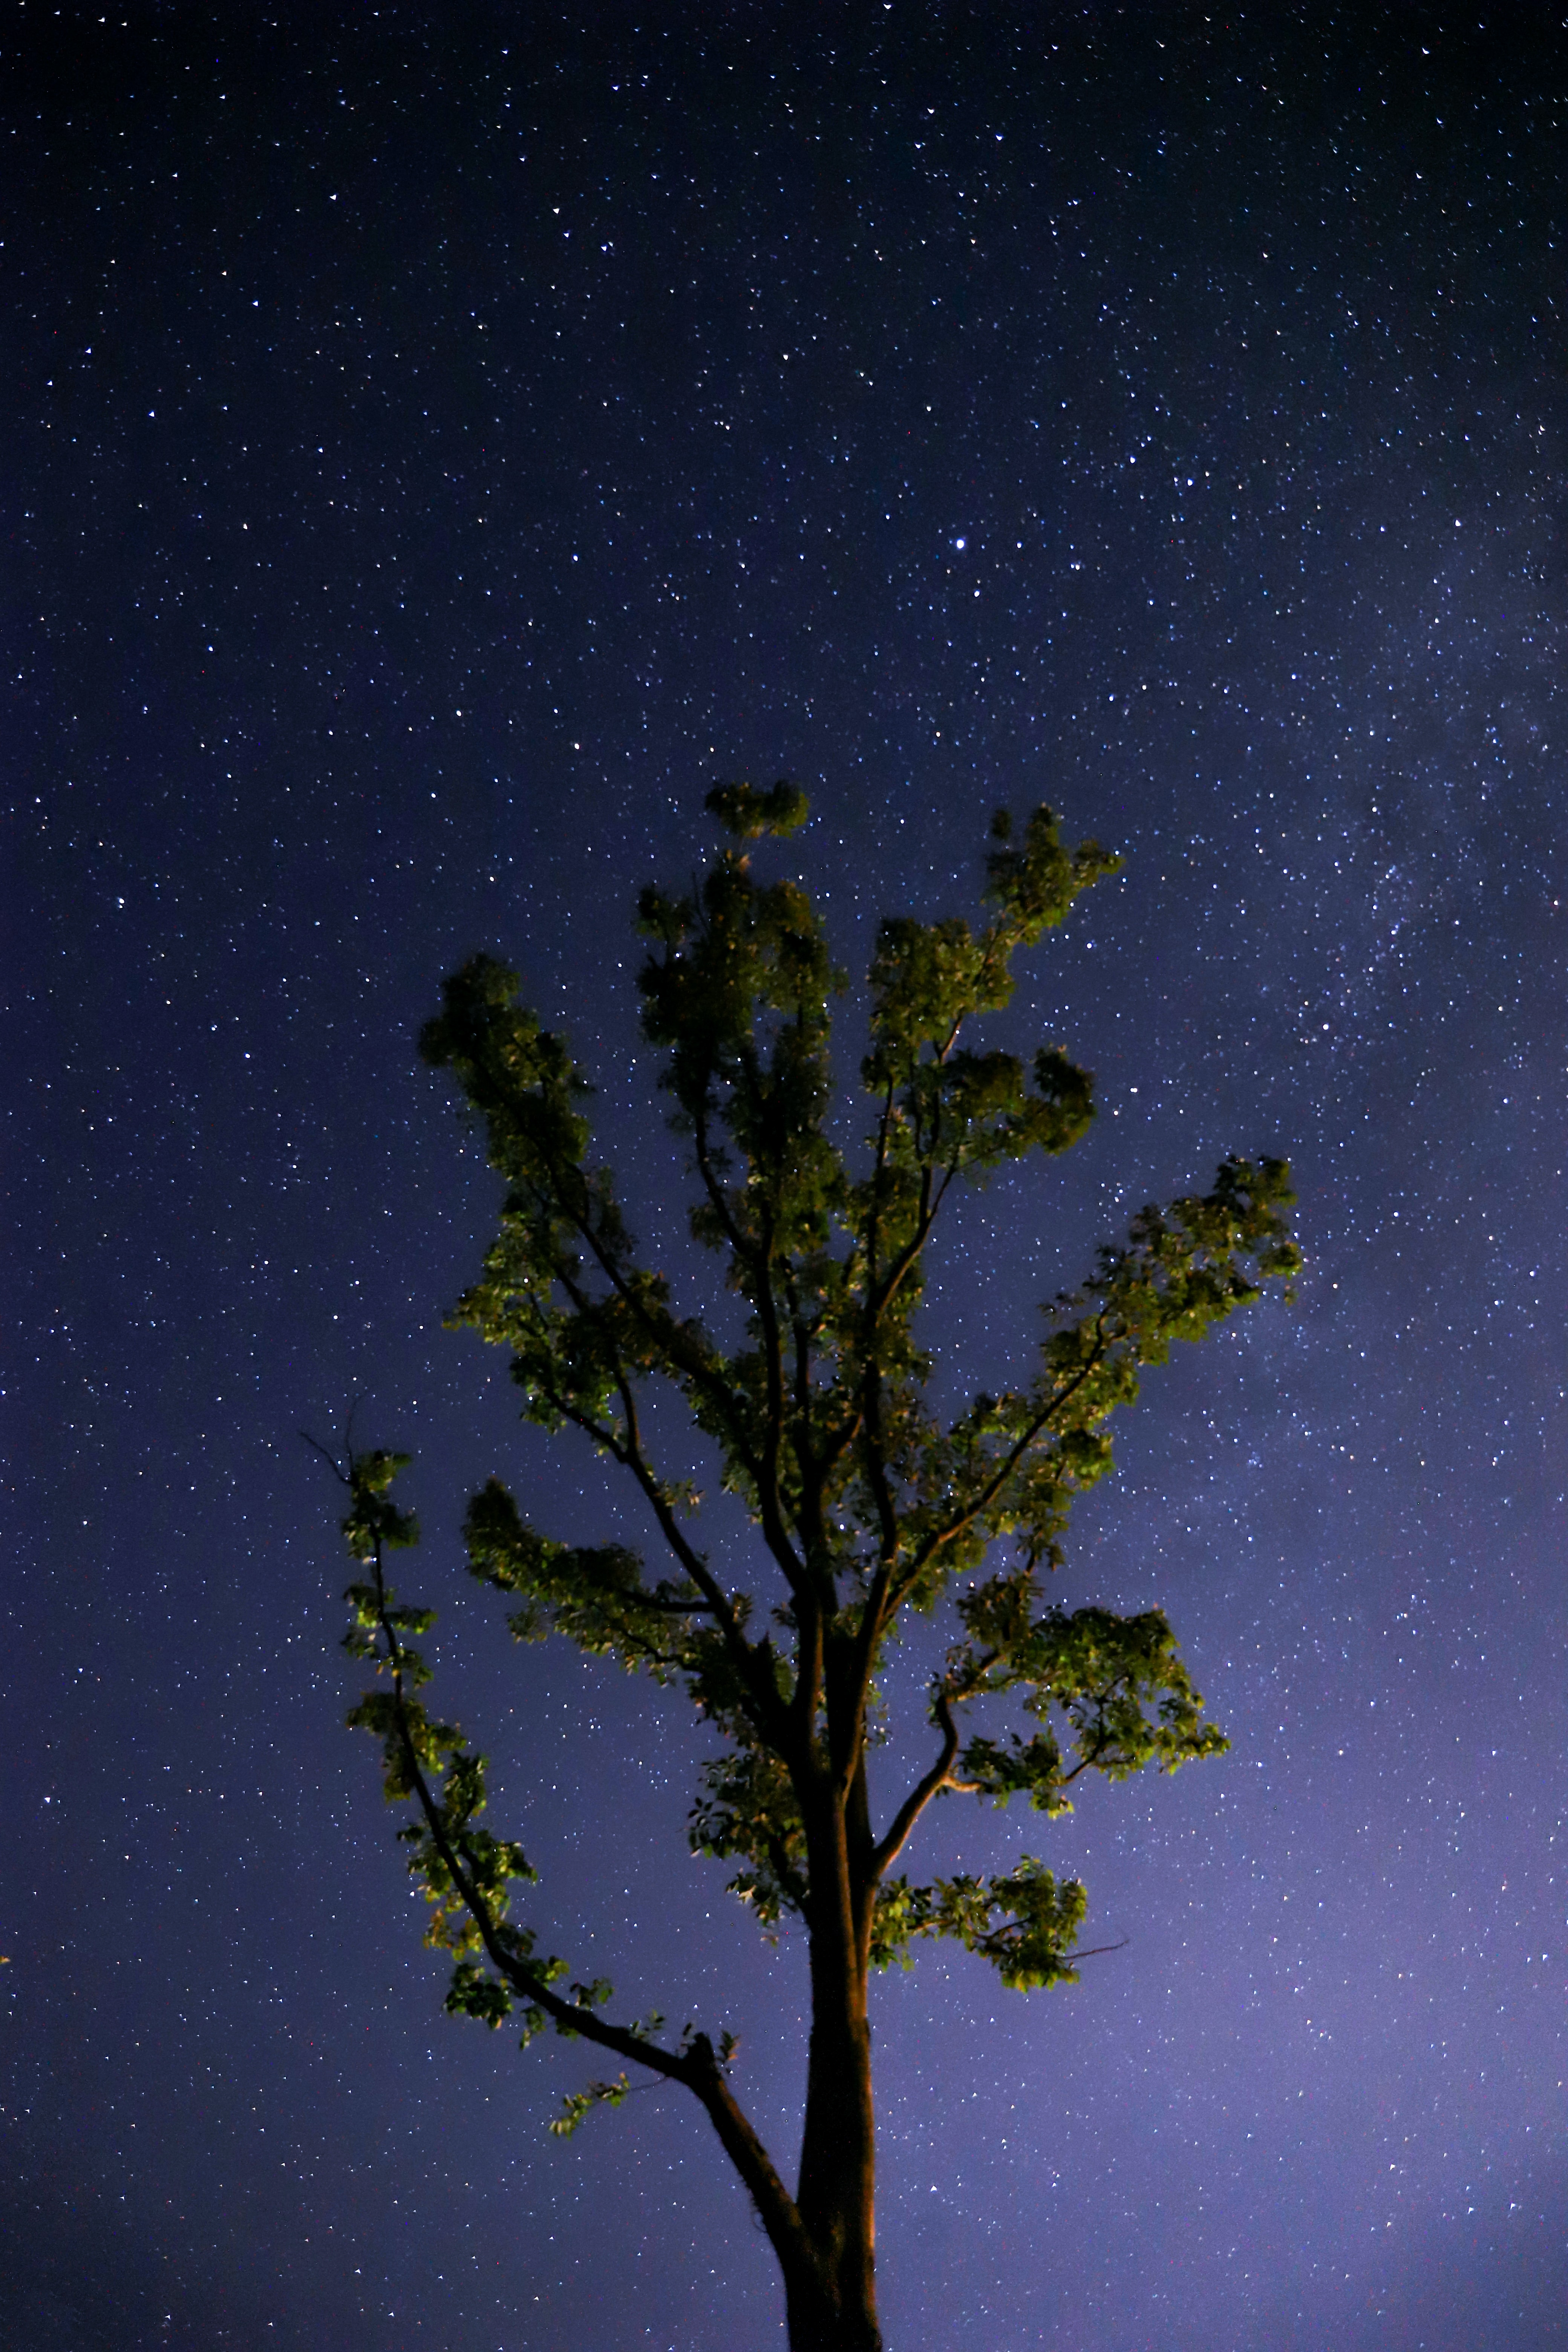 green leafed tree under sky full of star